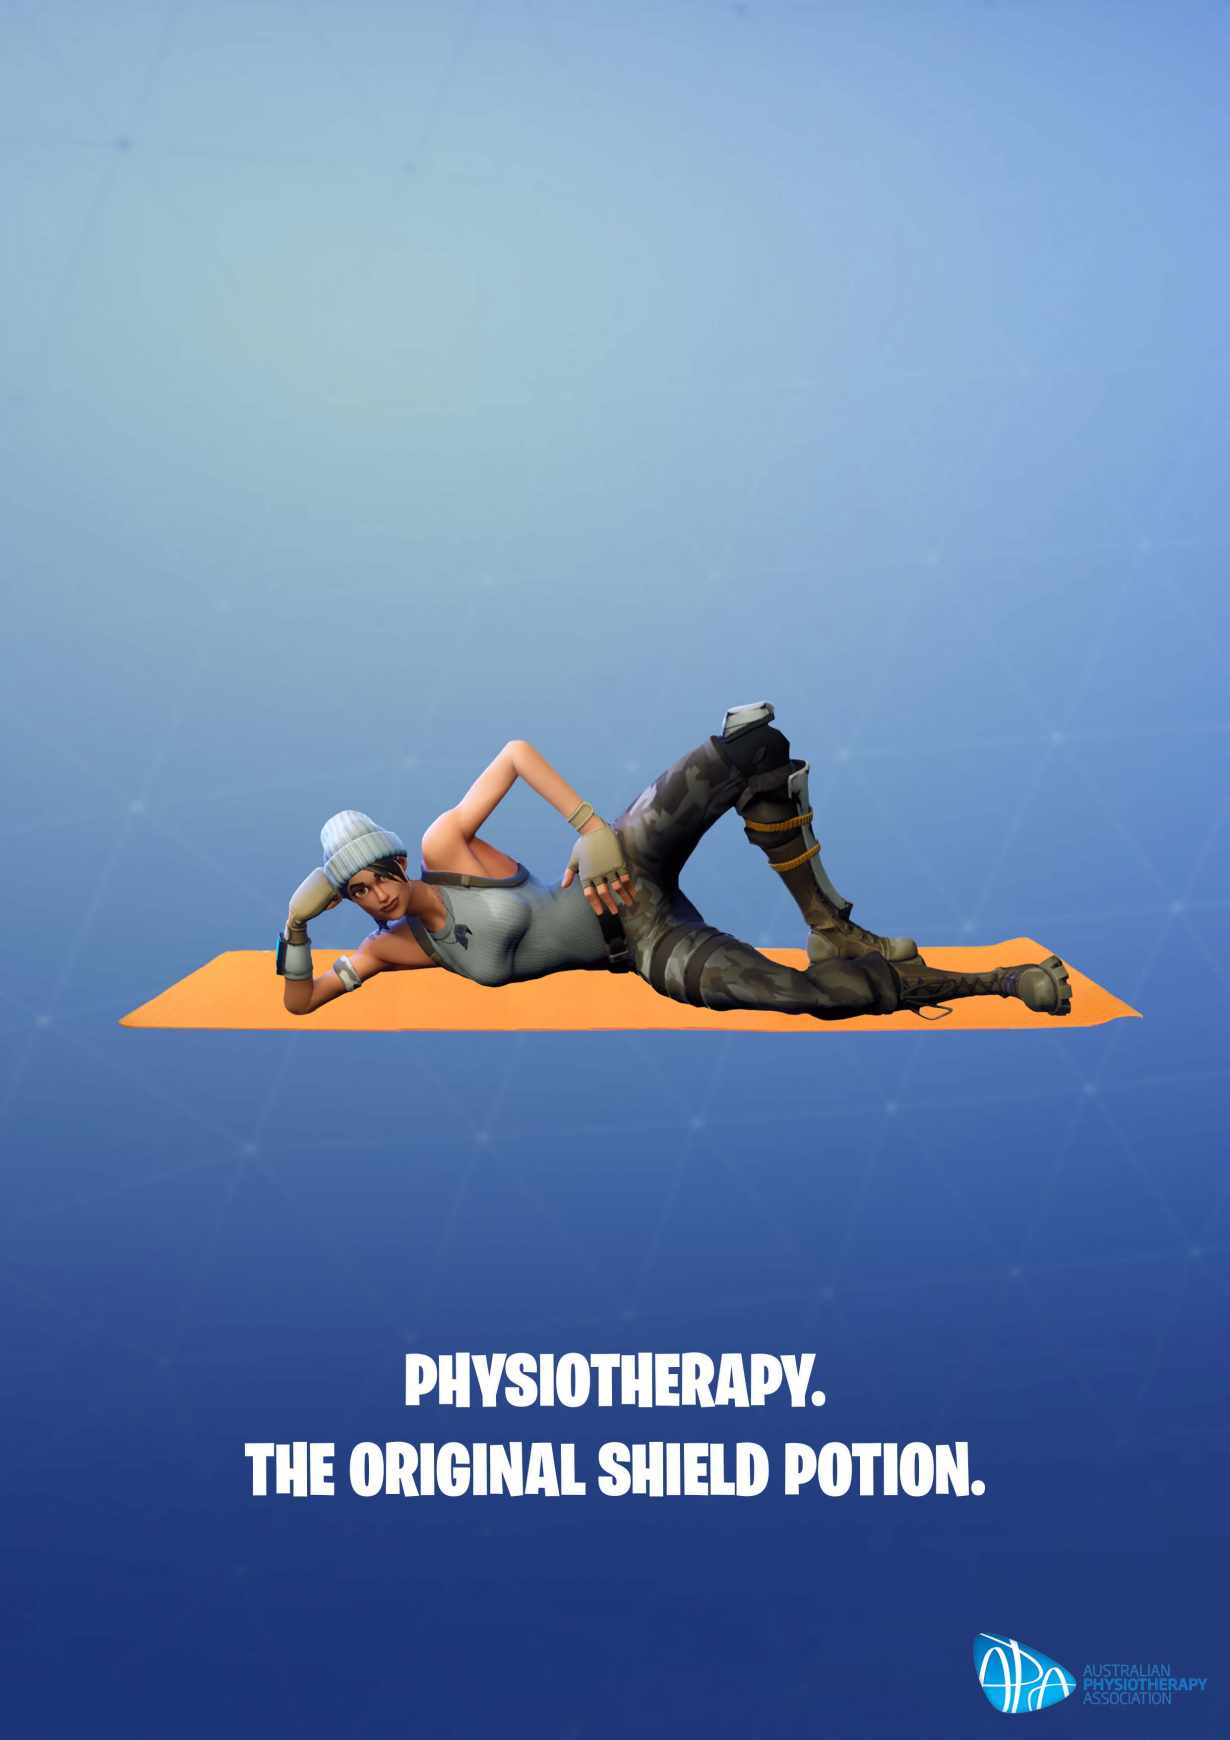 Australian Physiotherapy Association Print Ad - The Fortnite Physio, 3